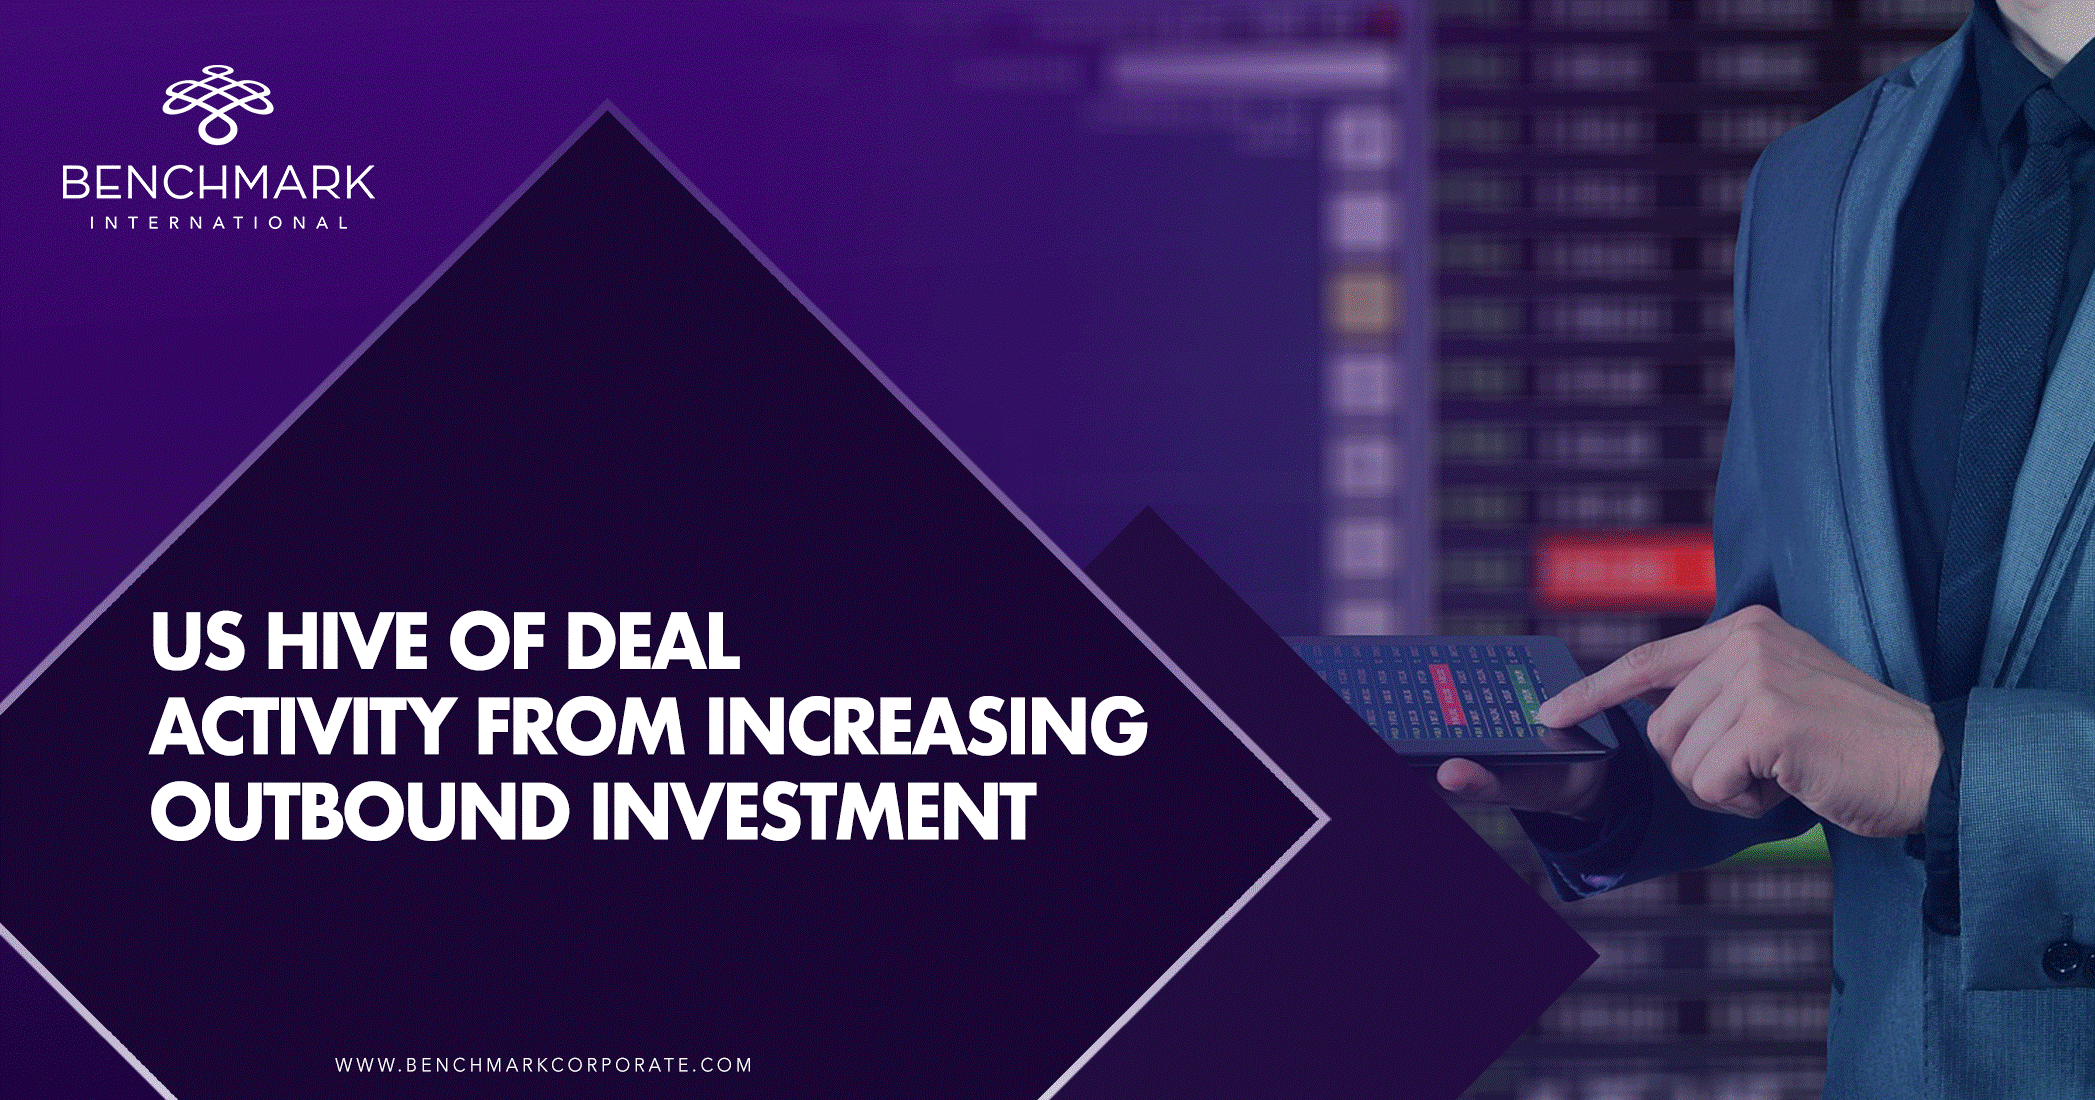 US Hive of Deal Activity from Increasing Outbound Investment